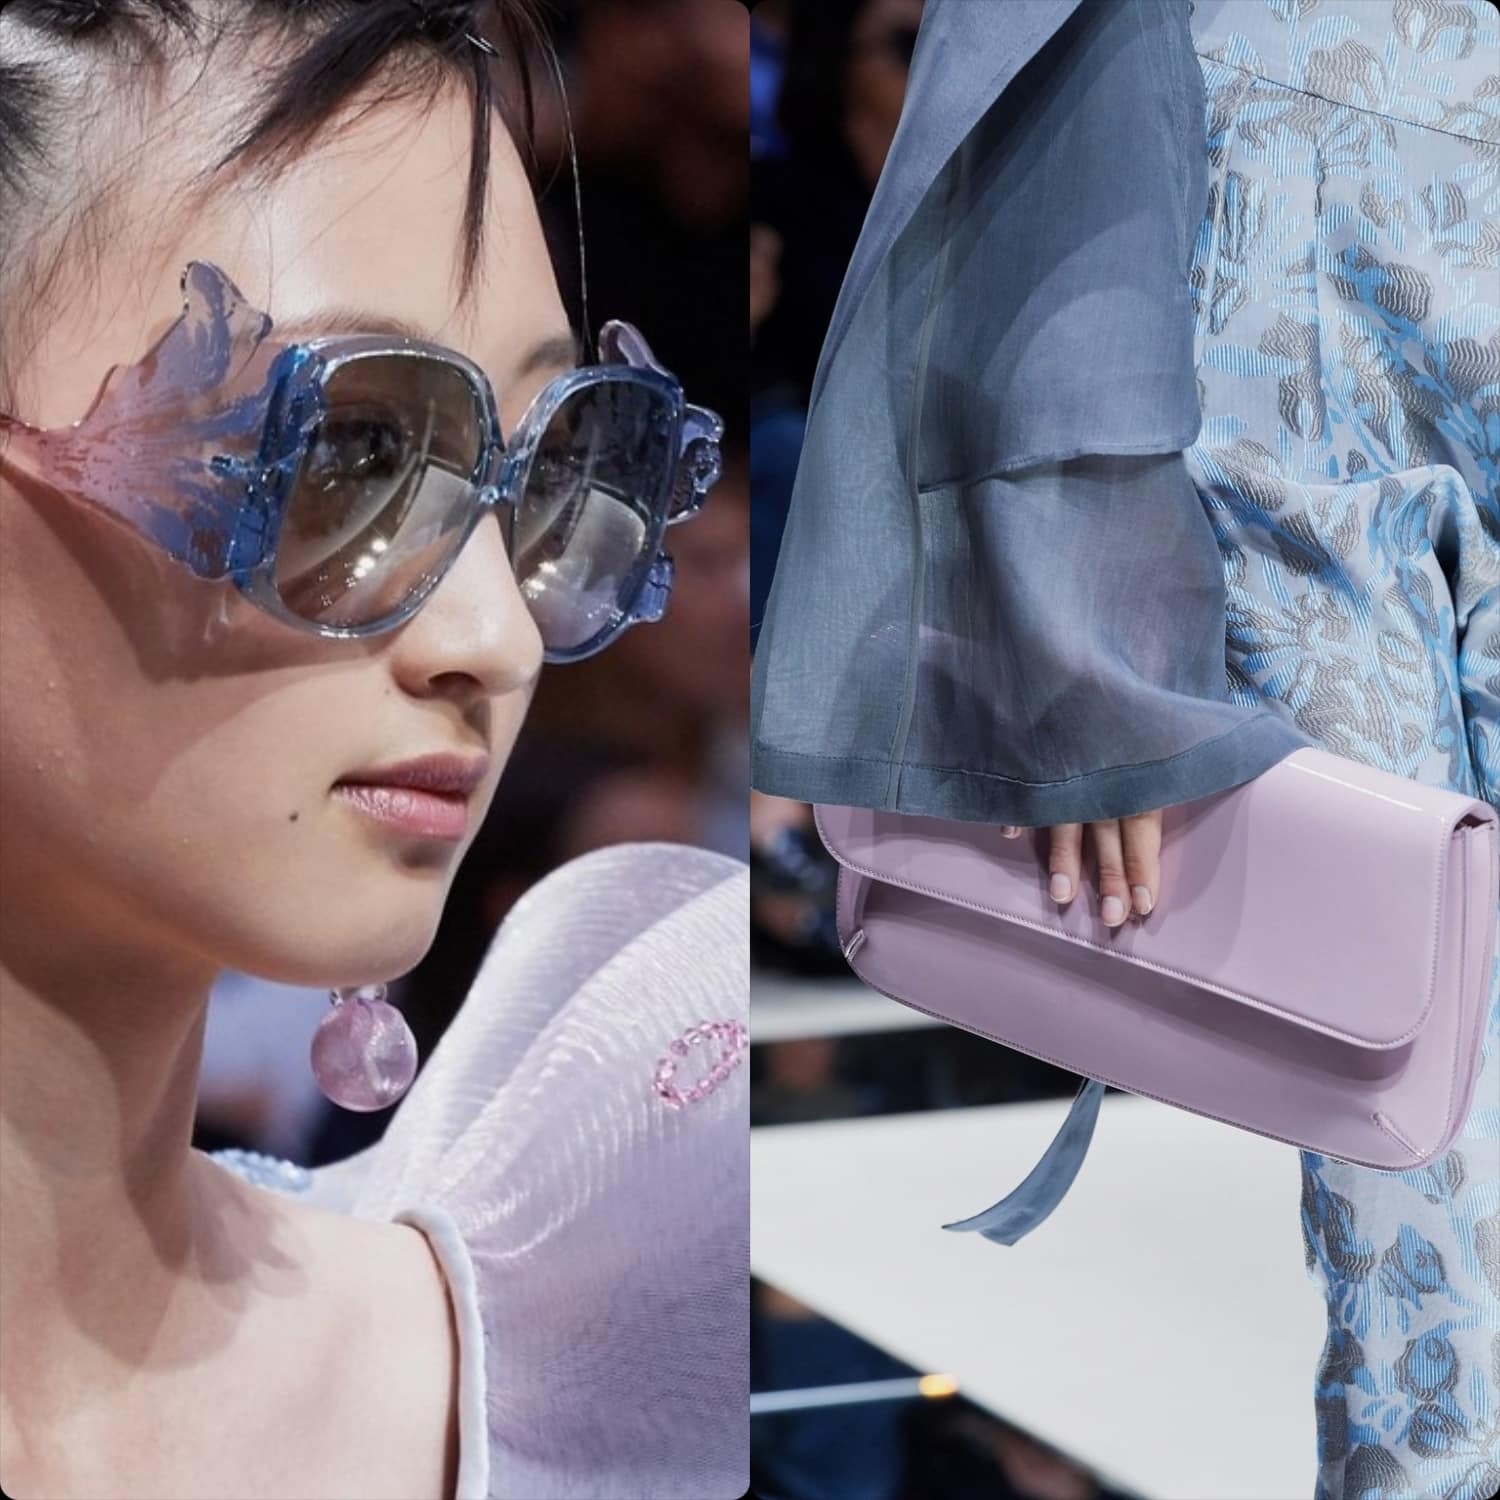 Giorgio Armani Spring Summer 2020 Milan Fashion Week. RUNWAY MAGAZINE ® Collections. RUNWAY NOW / RUNWAY NEW